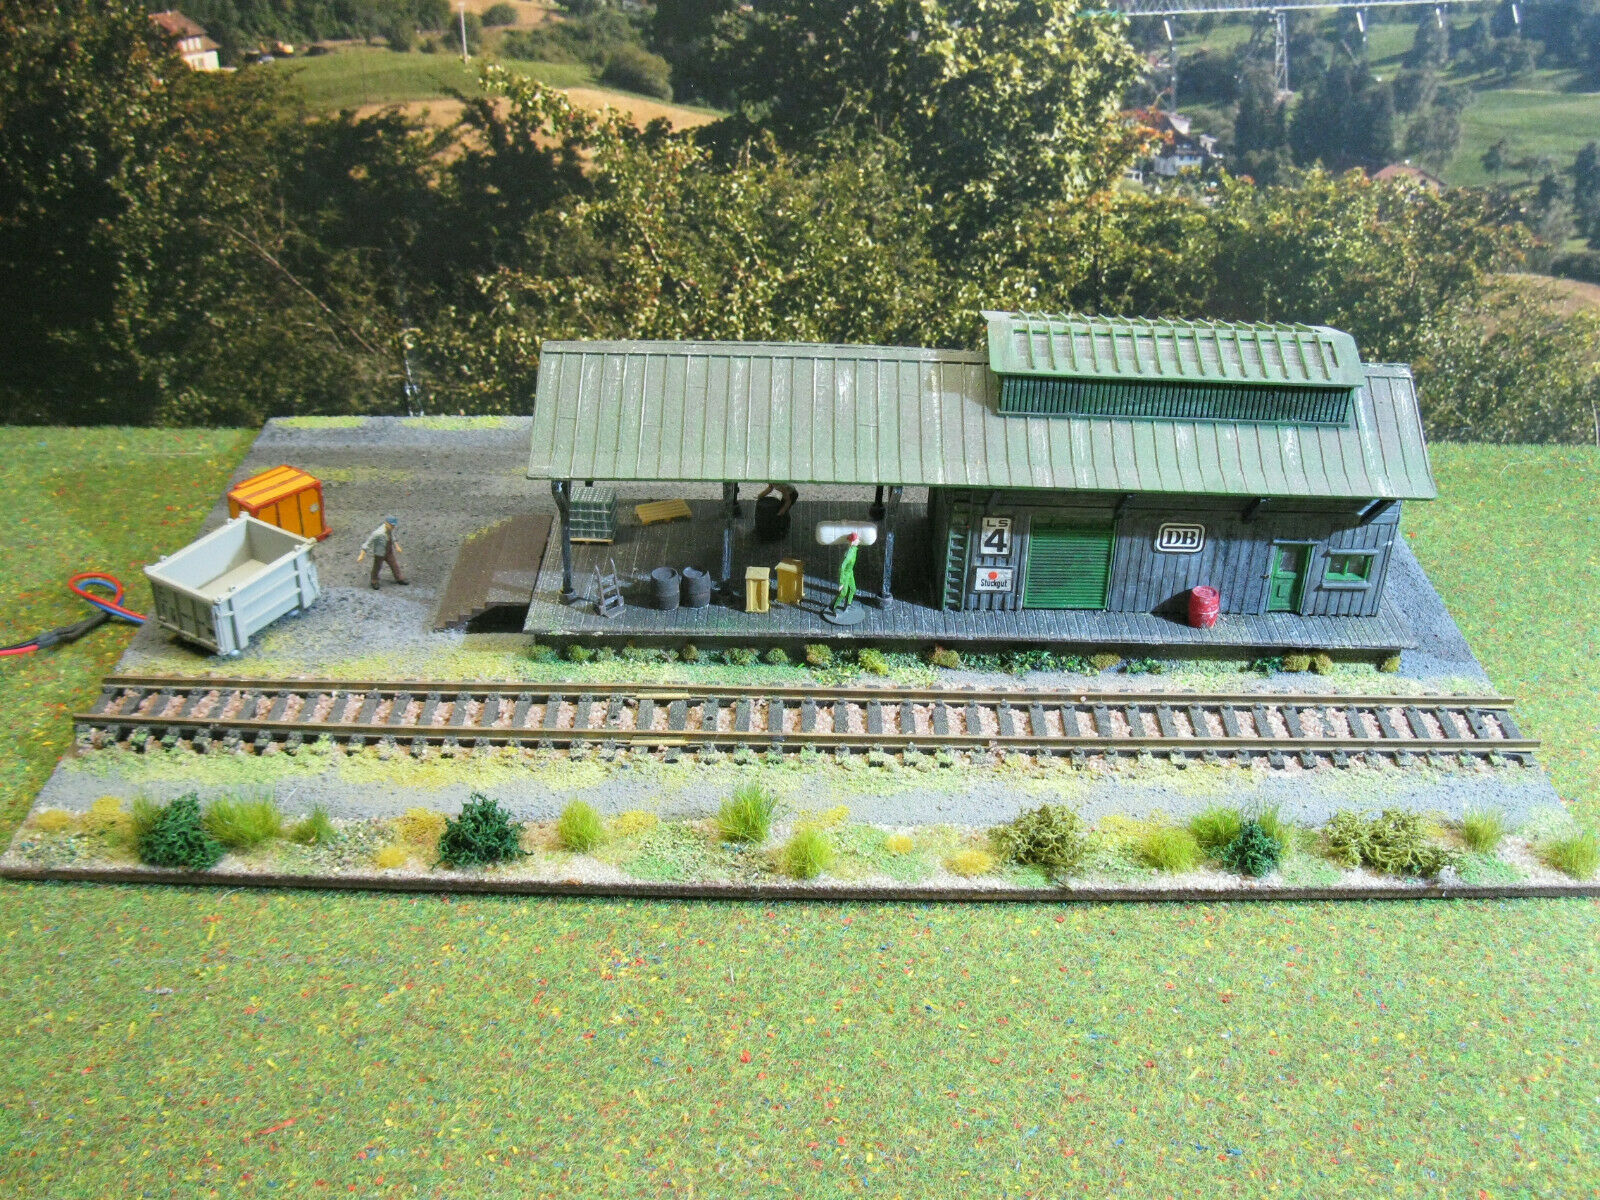 Freight Station with LED Light Figures Vehicles model railway diorama H0 1 87